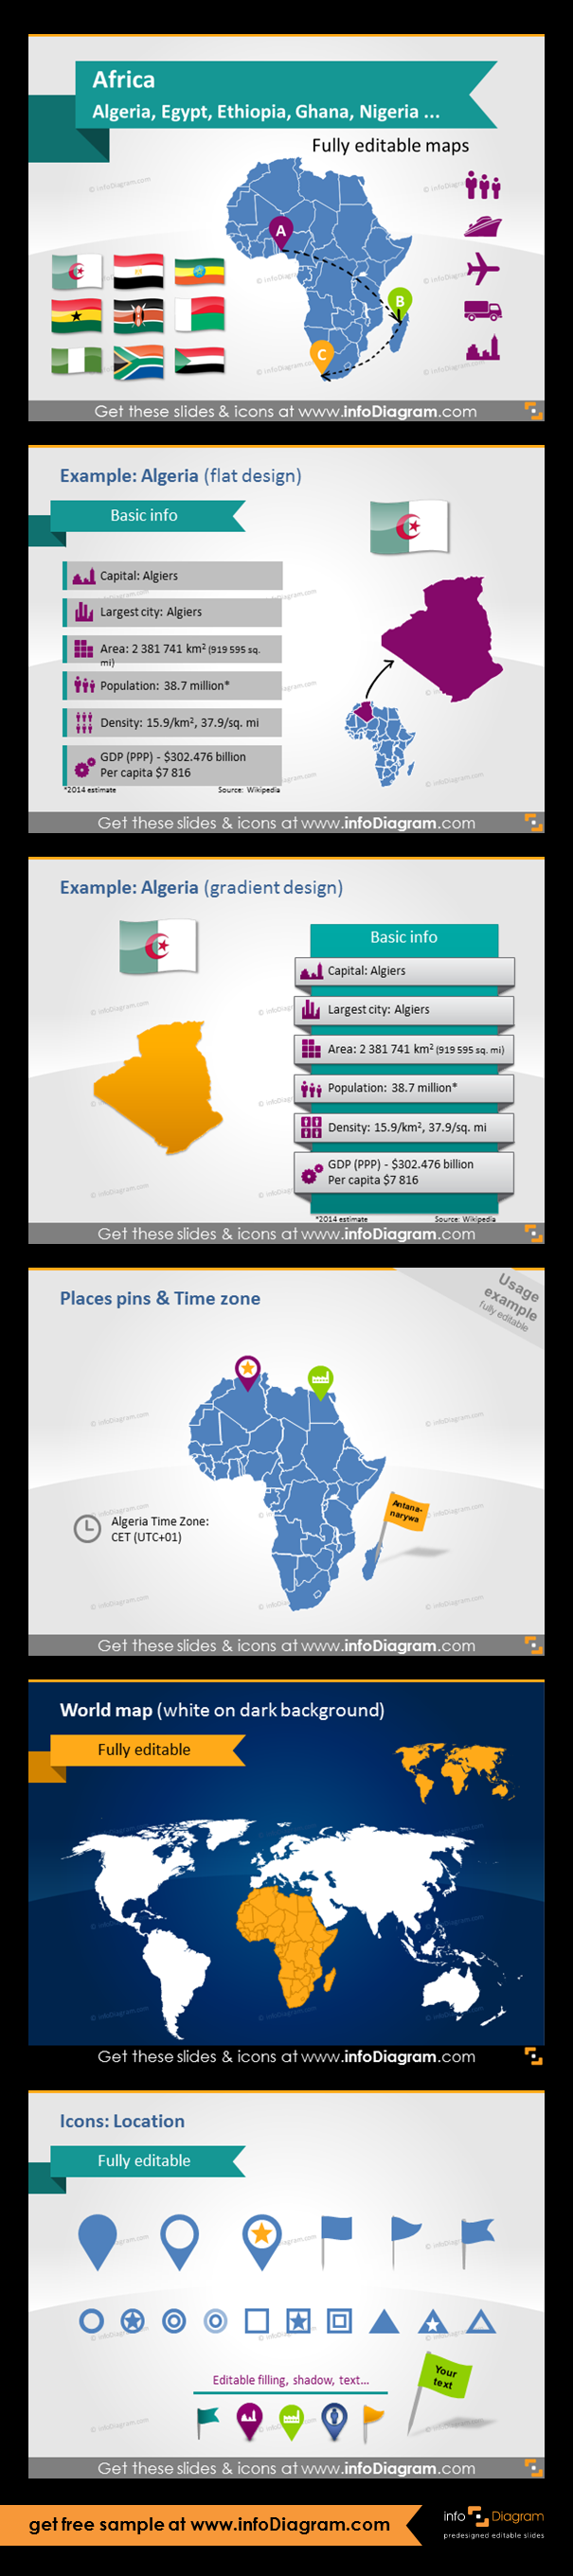 Africa countries editable powerpoint maps localization and fully editable maps icons arrows country statistics data population density area gdp largest city capital world map with africa highlighted gumiabroncs Gallery